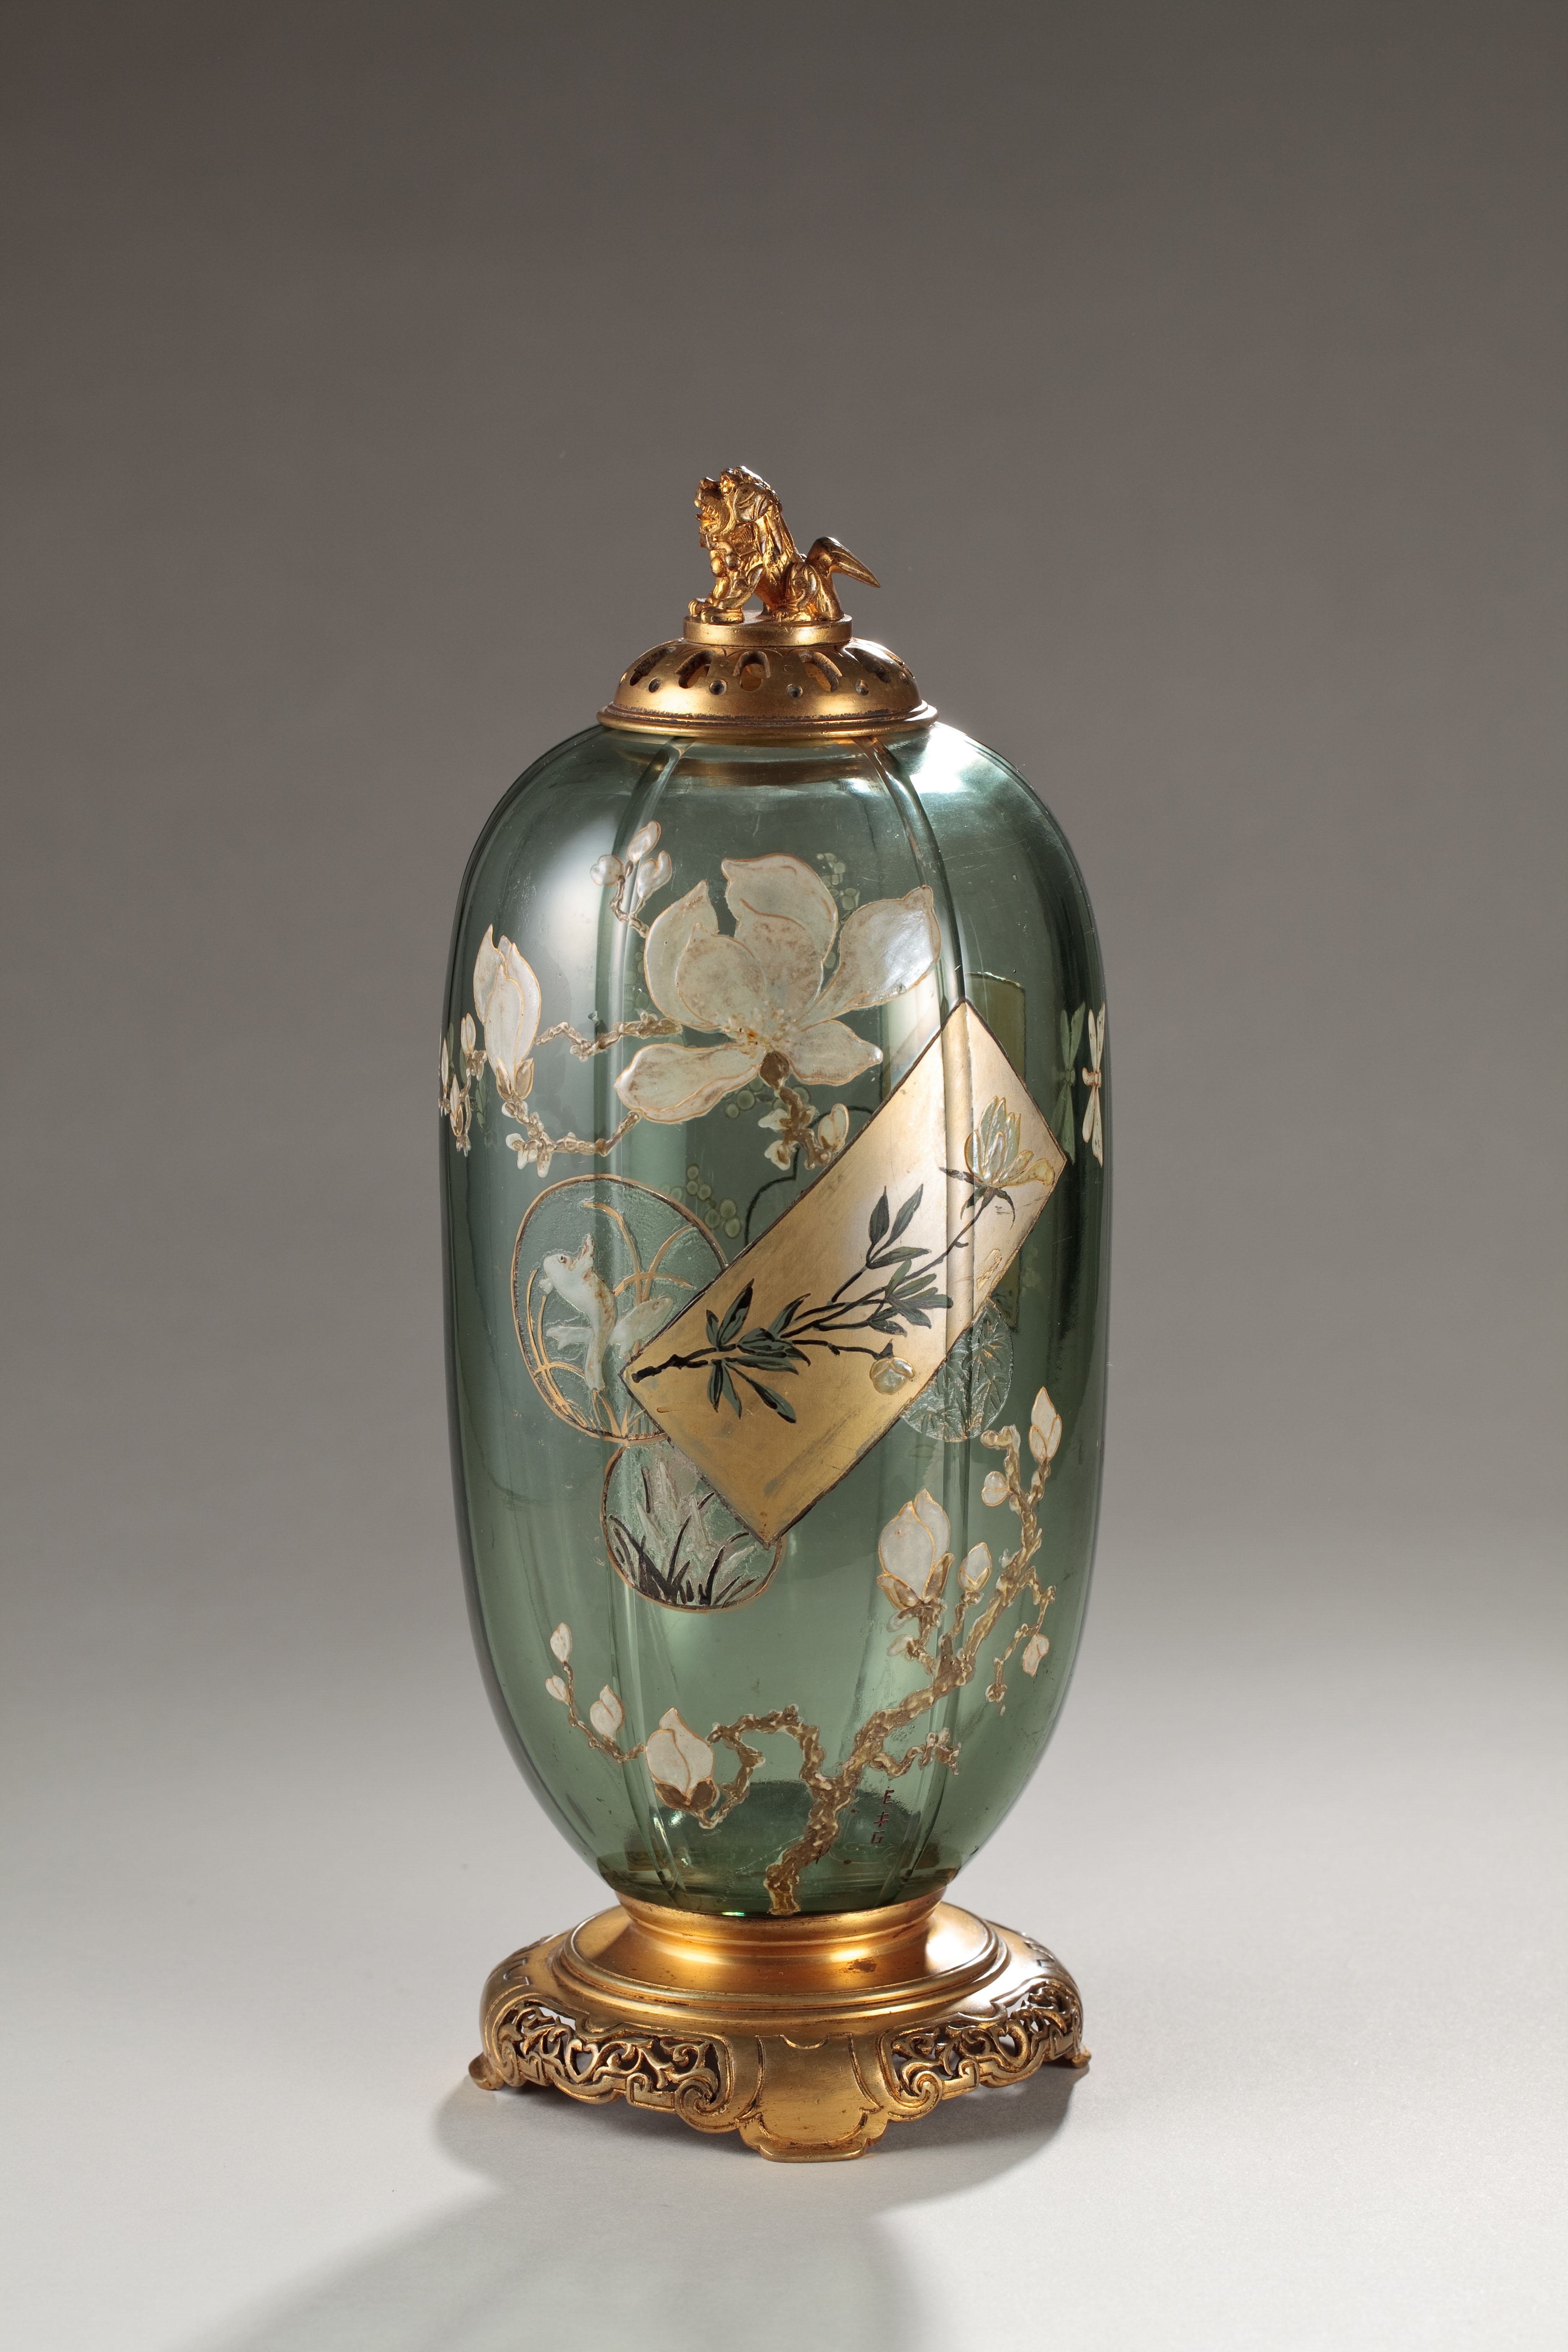 Lidded bottle with flowering plant and colored paper design by Emile Galle (1870s) | MISTUBUSHI ICHIGOKAN MUSEUM, TOKYO